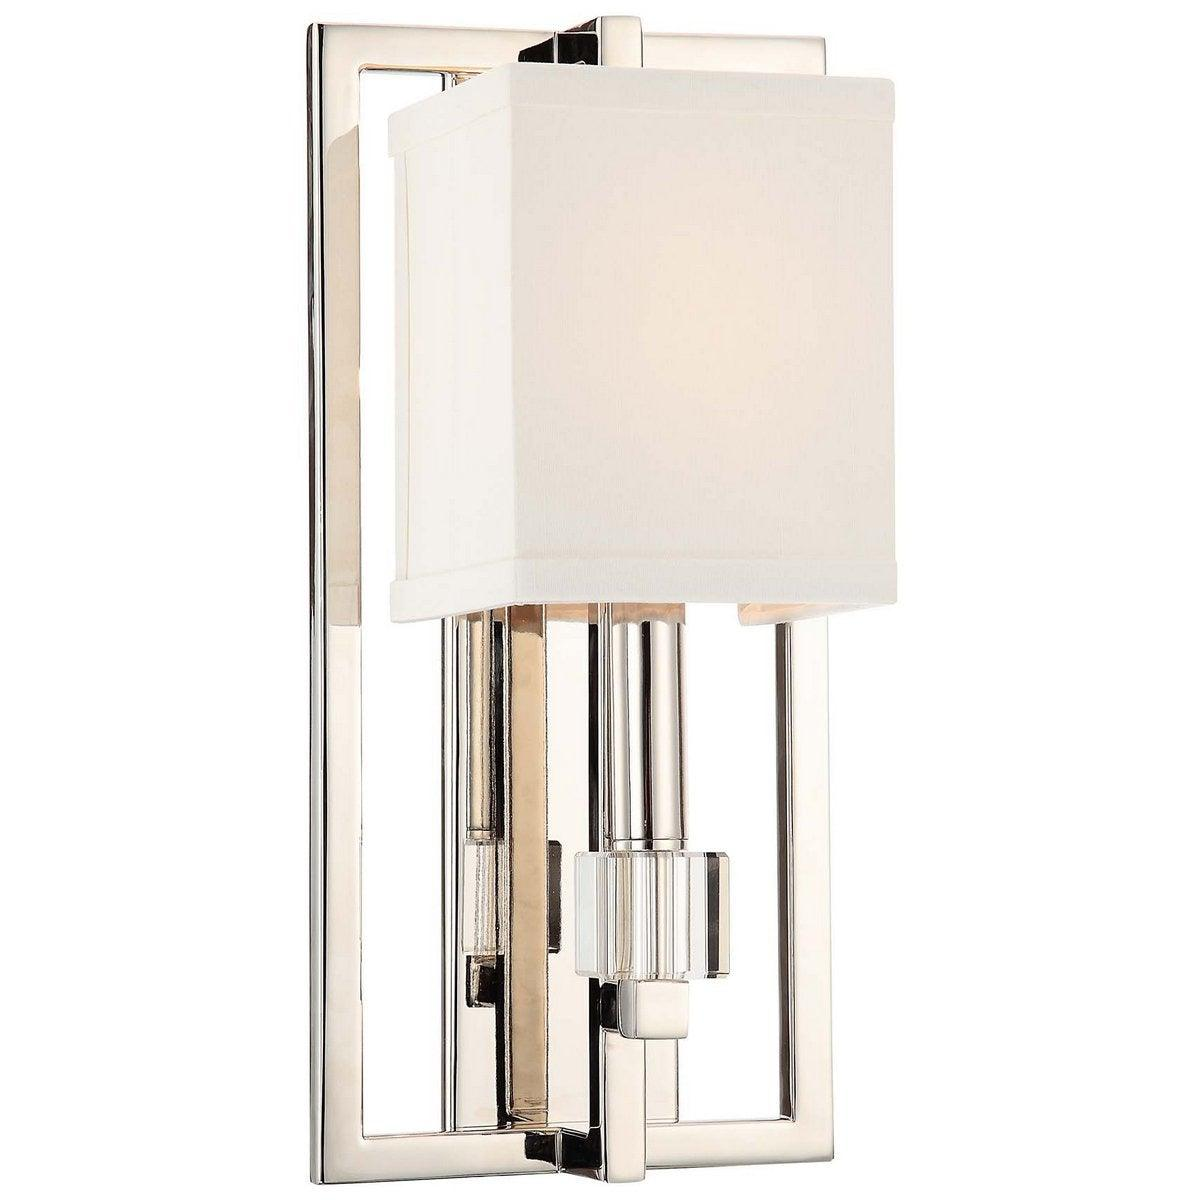 Crystorama - 8881-PN - One Light Wall Mount - Dixon - Polished Nickel